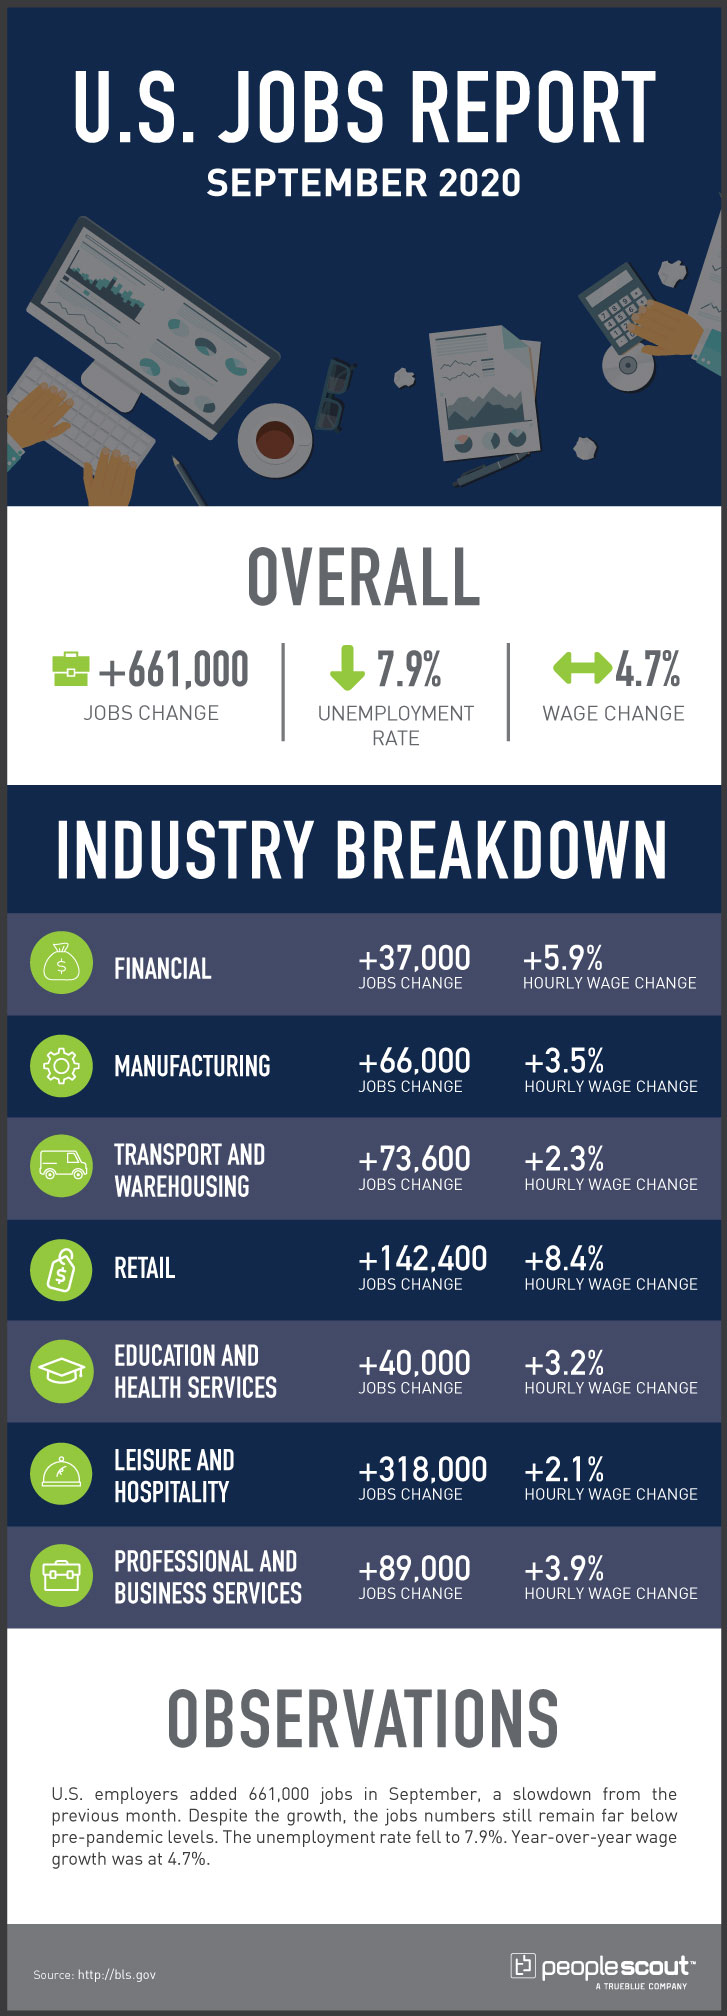 U.S. Jobs Report September 2020 infographic